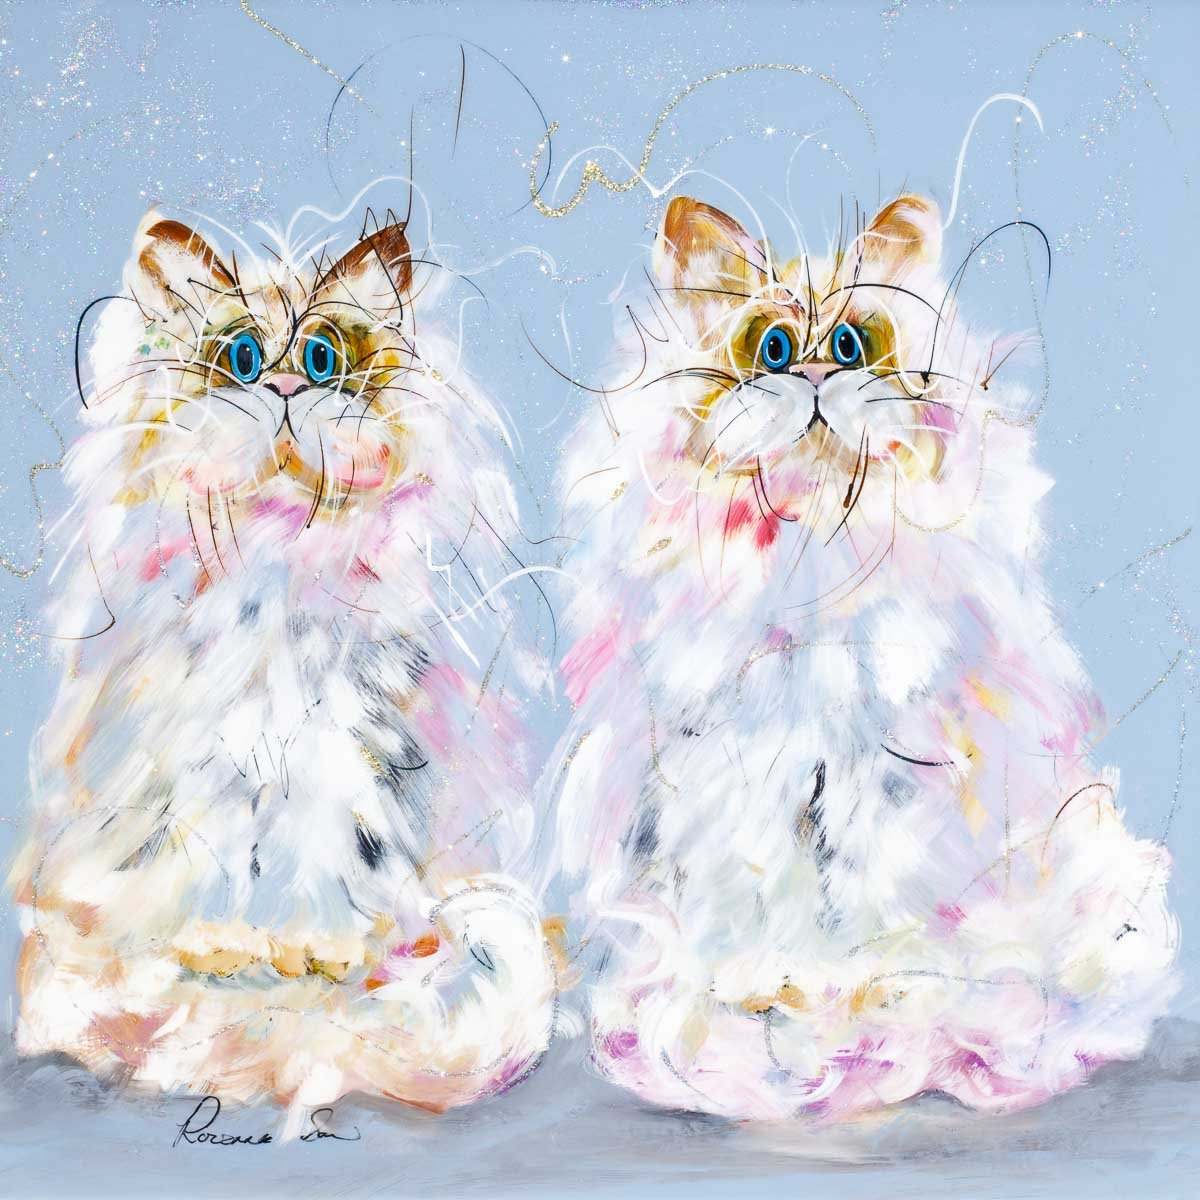 A Purrfect Pair - Original Rozanne Bell Framed